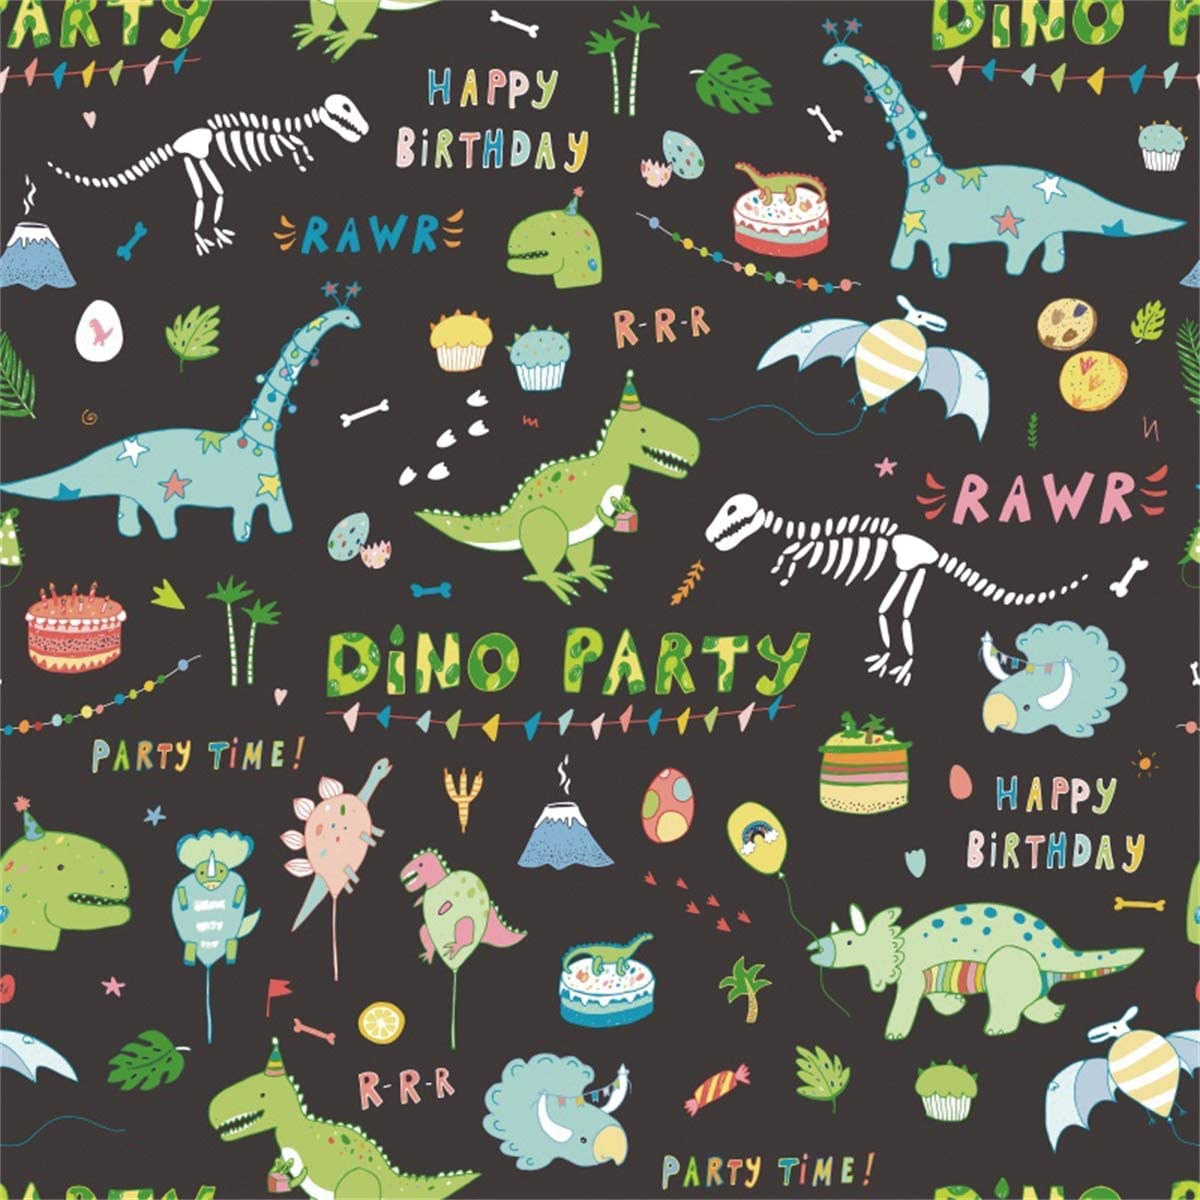 Yeele Dino Party Photography Backdrop 10x10ft Kids Birthday Party Background Kids Adult Artistic Portrait B Day Party Banner Room Decoration Photo Booth Photoshoot Props Wallpaper